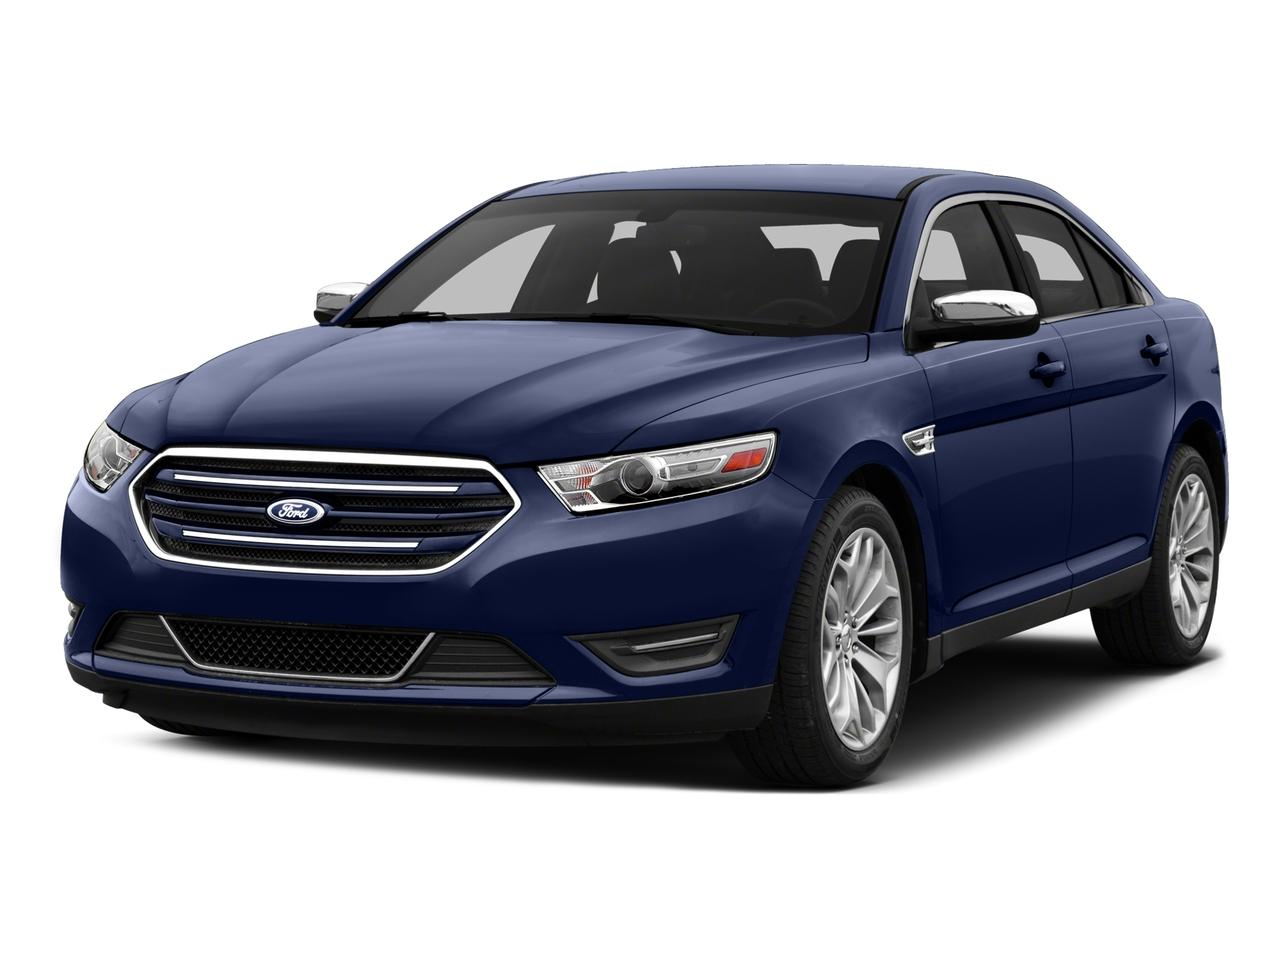 2015 Ford Taurus Vehicle Photo in Emporia, VA 23847